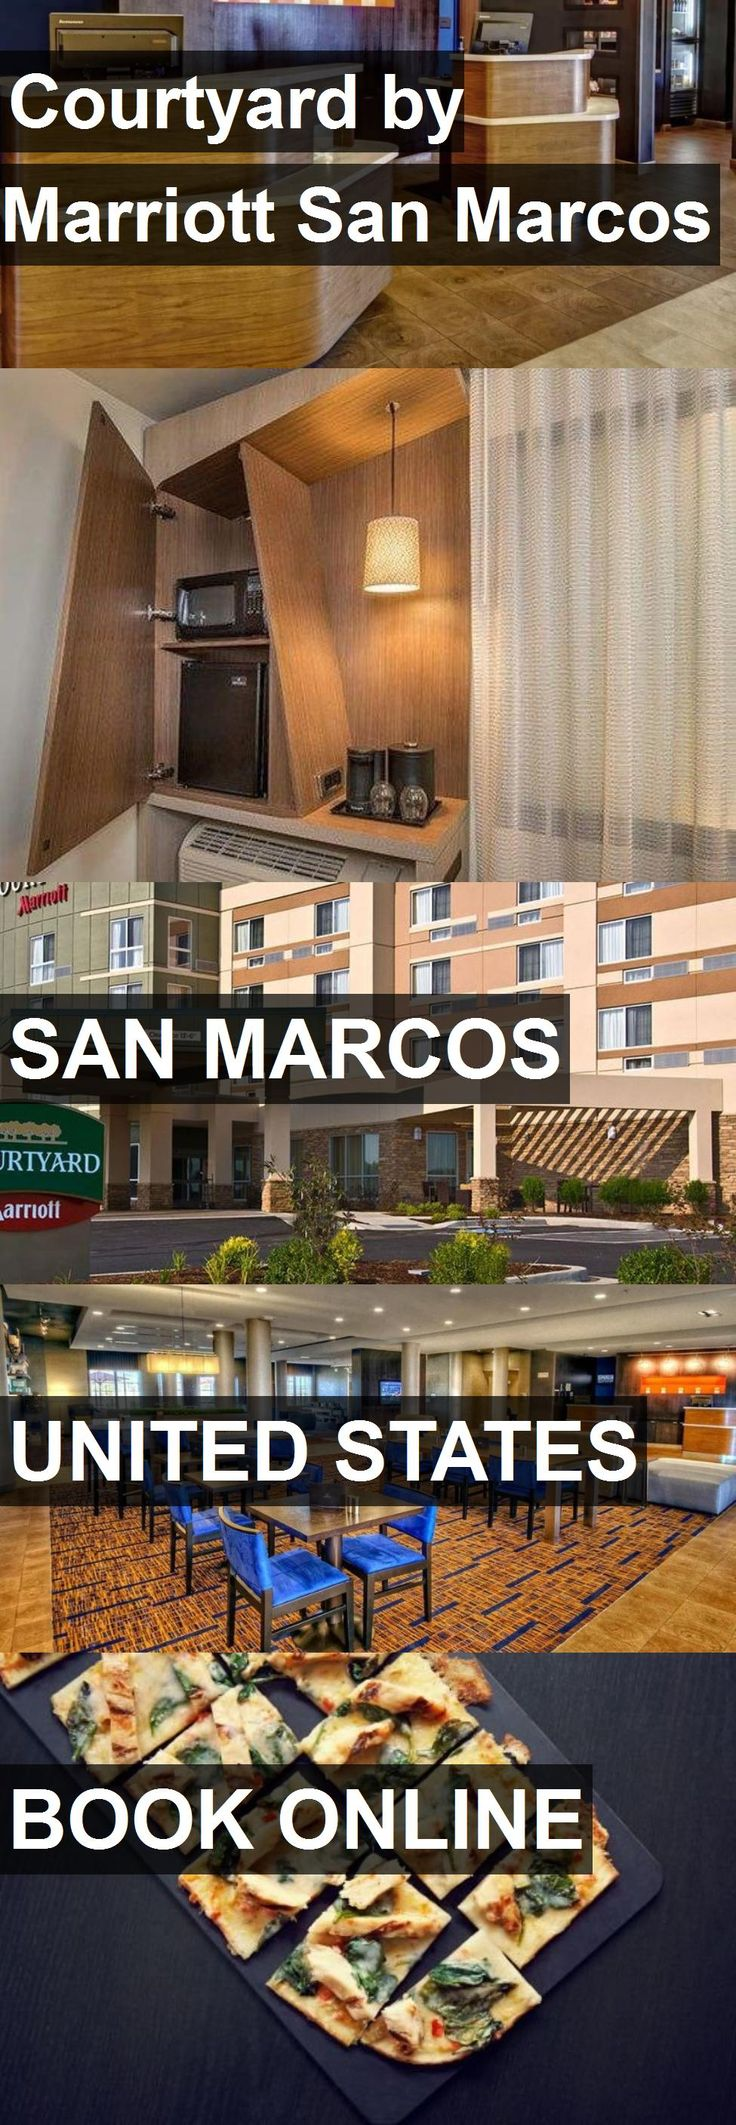 Hotel Courtyard by Marriott San Marcos in San Marcos, United States. For more information, photos, reviews and best prices please follow the link. #UnitedStates #SanMarcos #travel #vacation #hotel